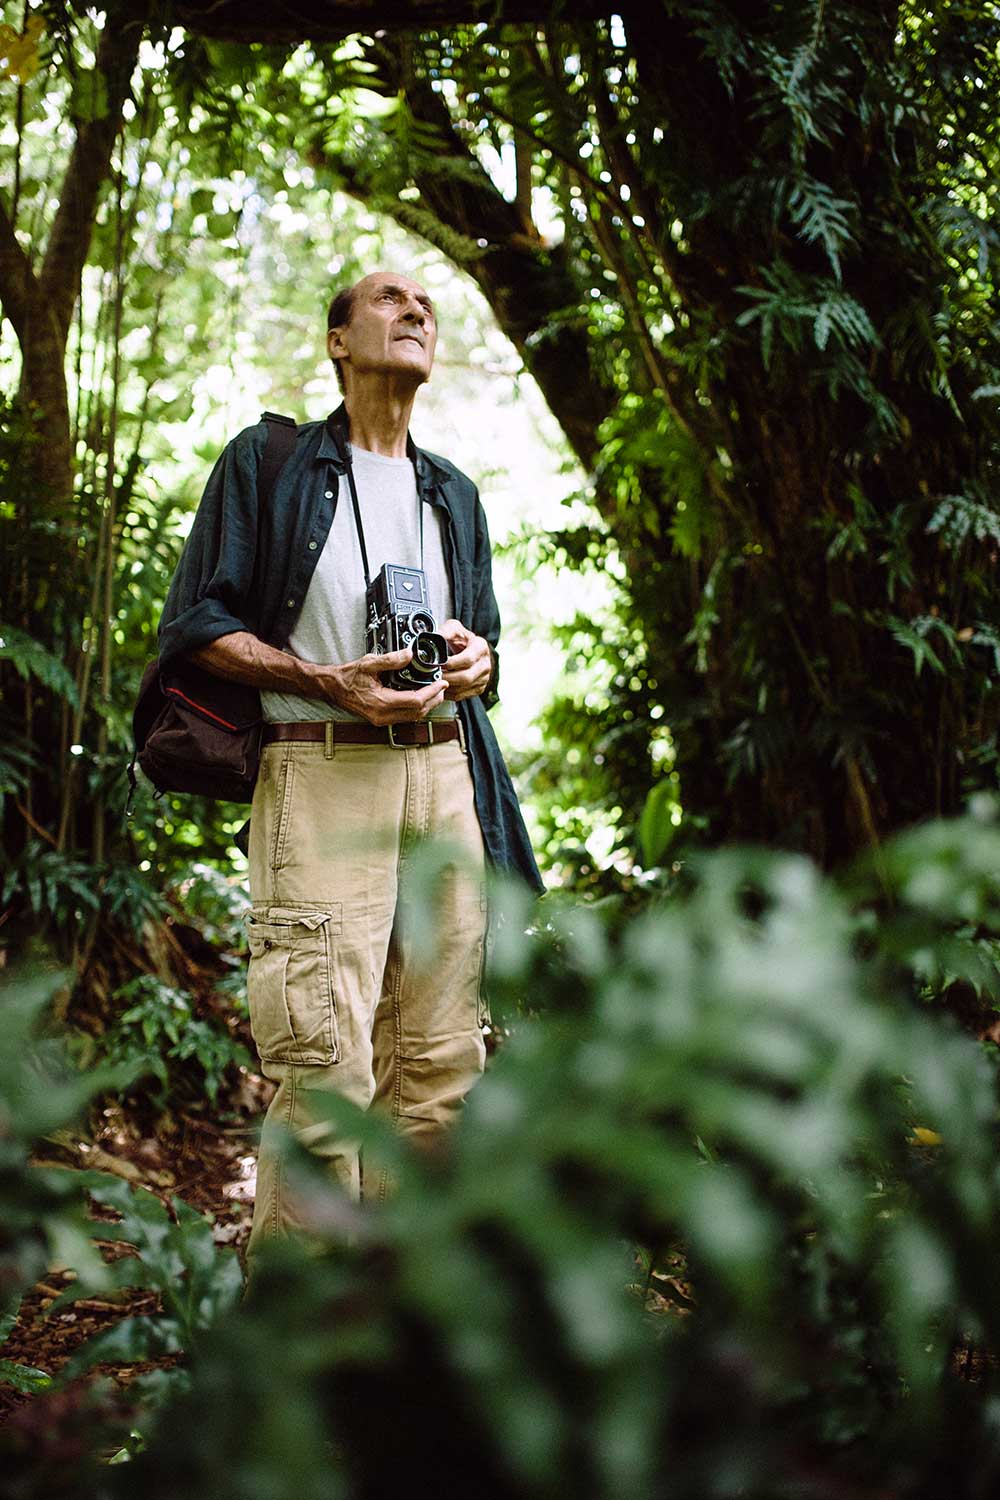 Photographer Franco Salmoiraghi in the forrest